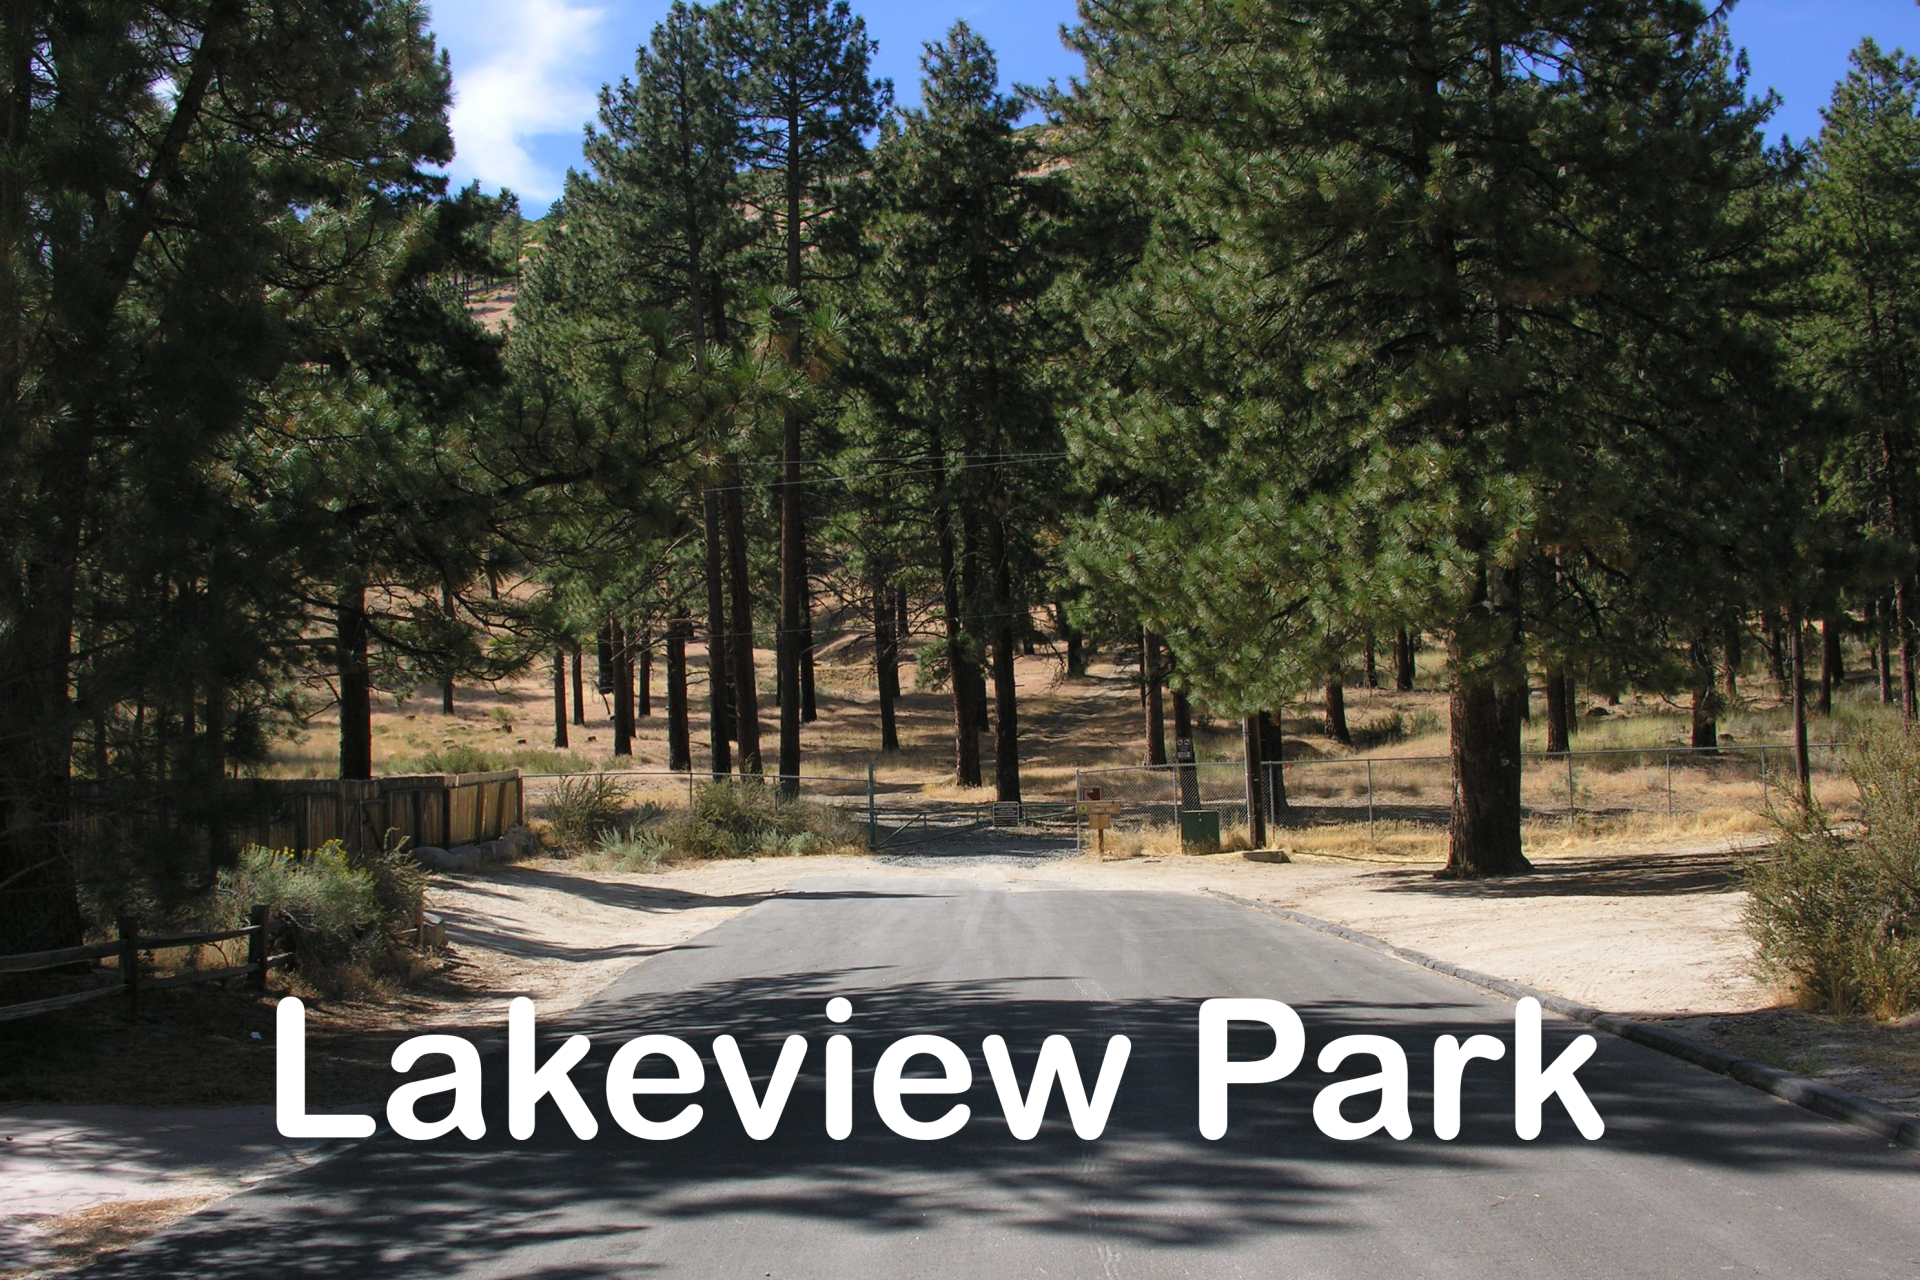 LakeviewPark